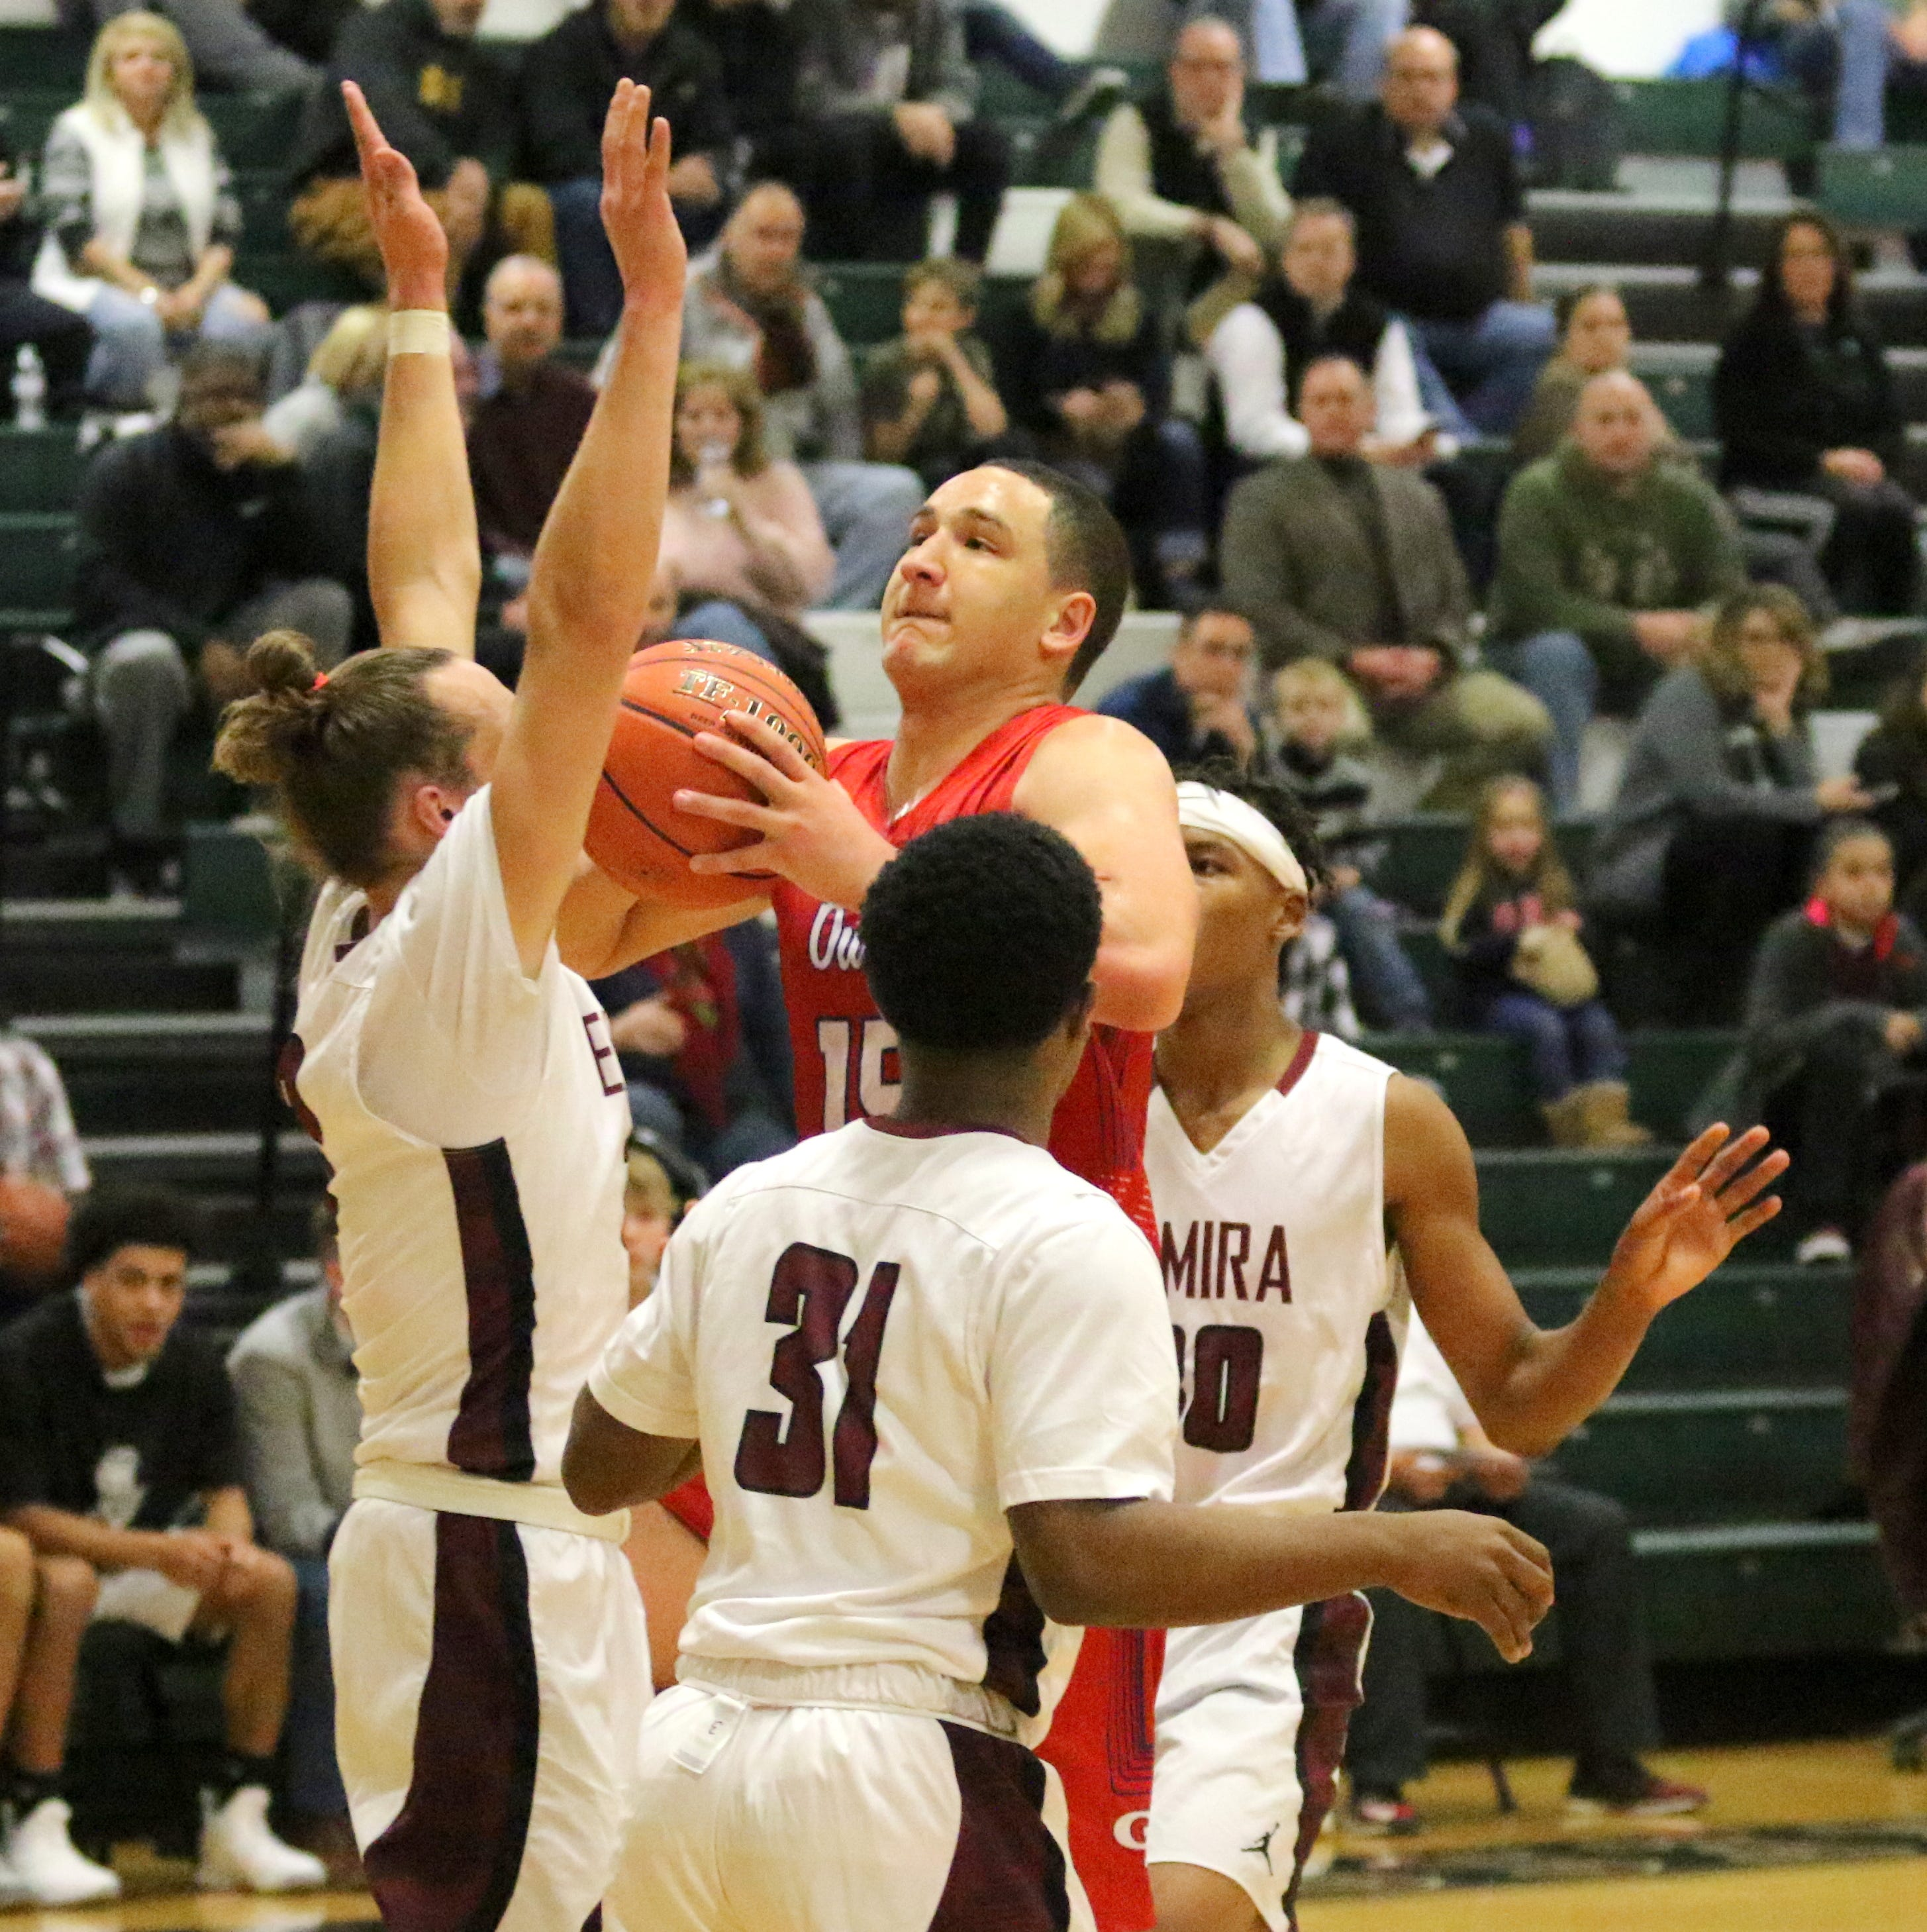 Elmira boys shut down unbeaten Owego in 60-38 victory